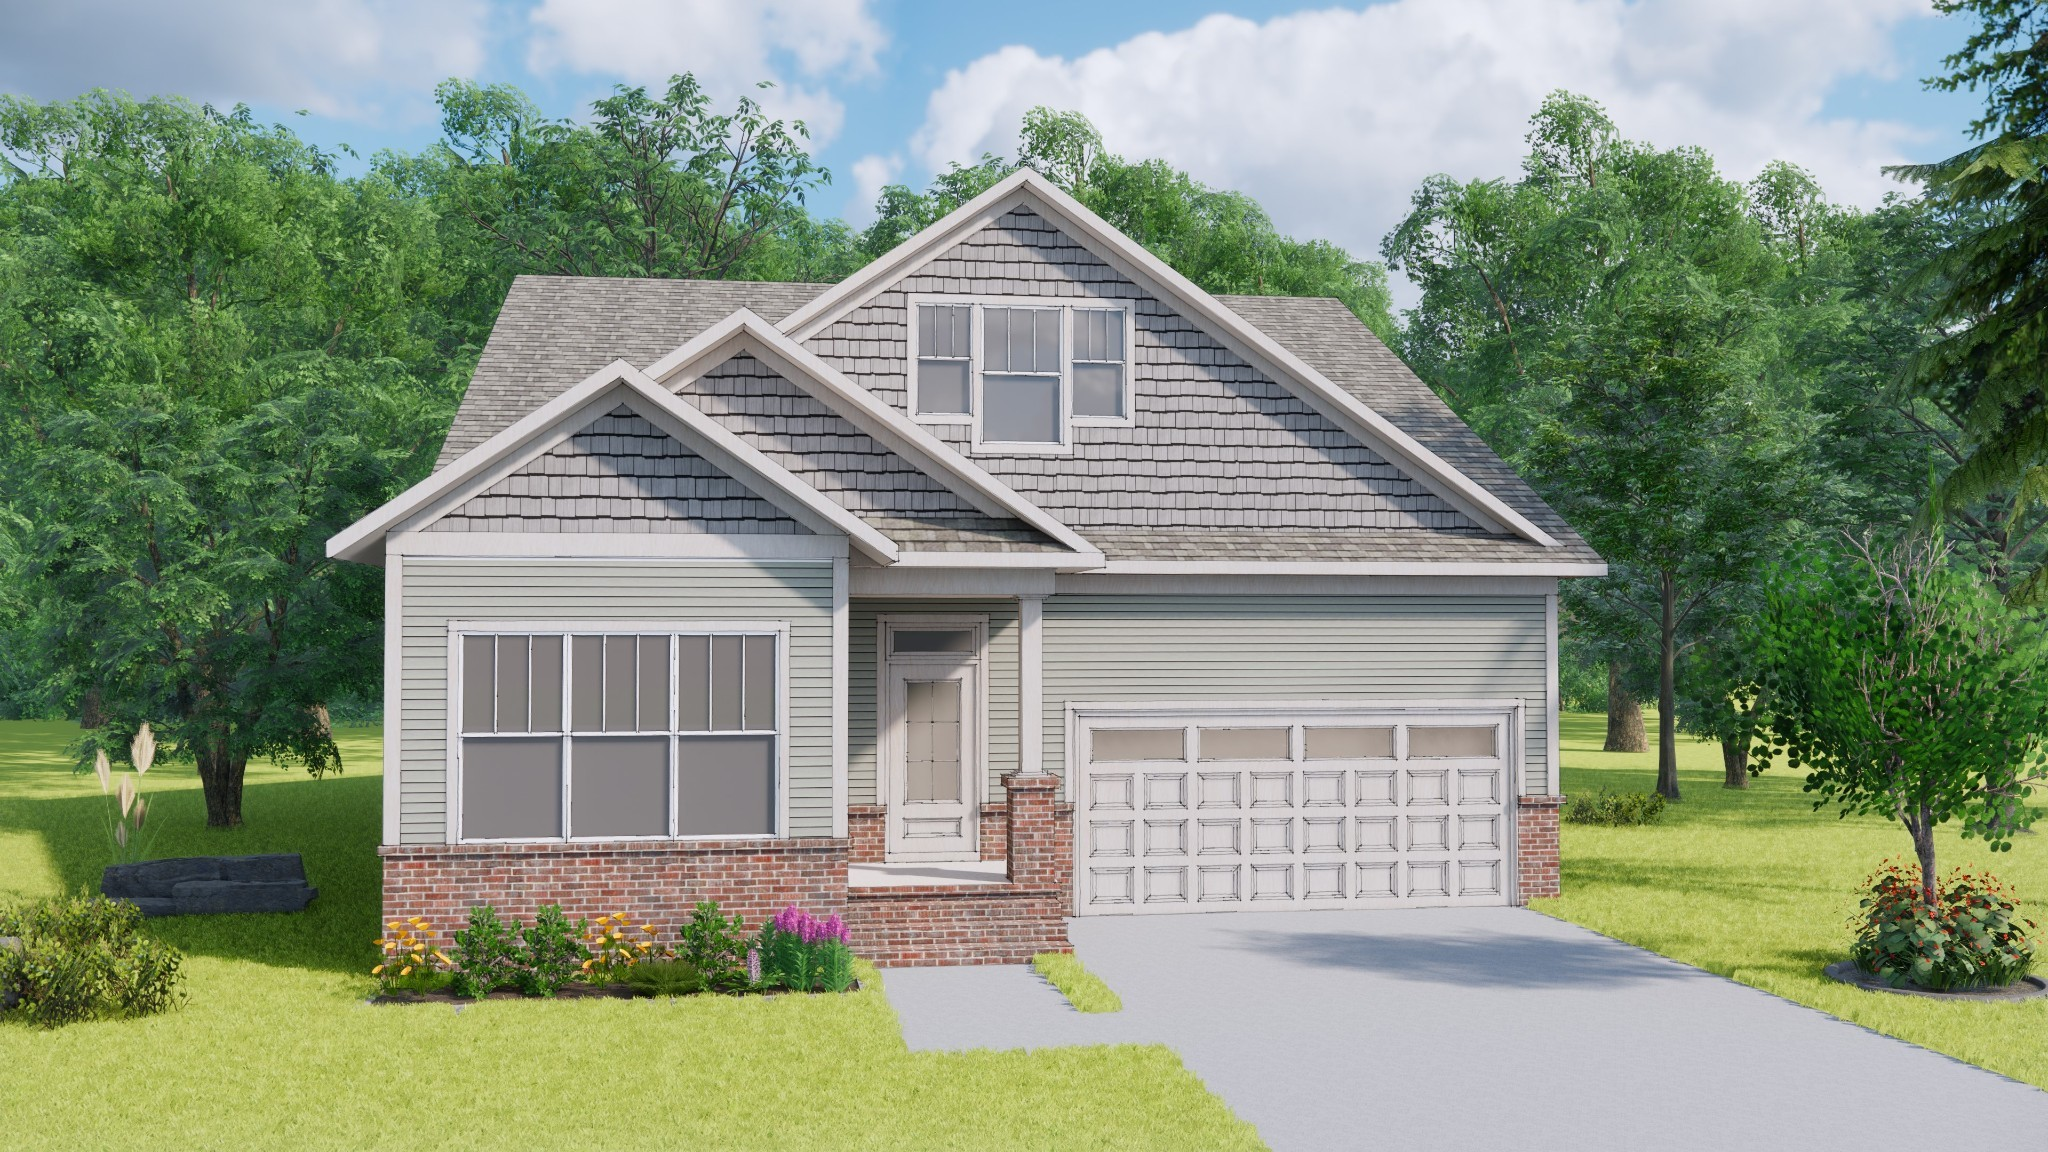 The Siena. Come view one of five new floorplans from Landmark Homes @ Southpoint! Brentwood's newest walkable community located near the corner of Pettus Rd / Nolensville Rd. Come in and pick your lot, customize your new home, and close by the end of the year!